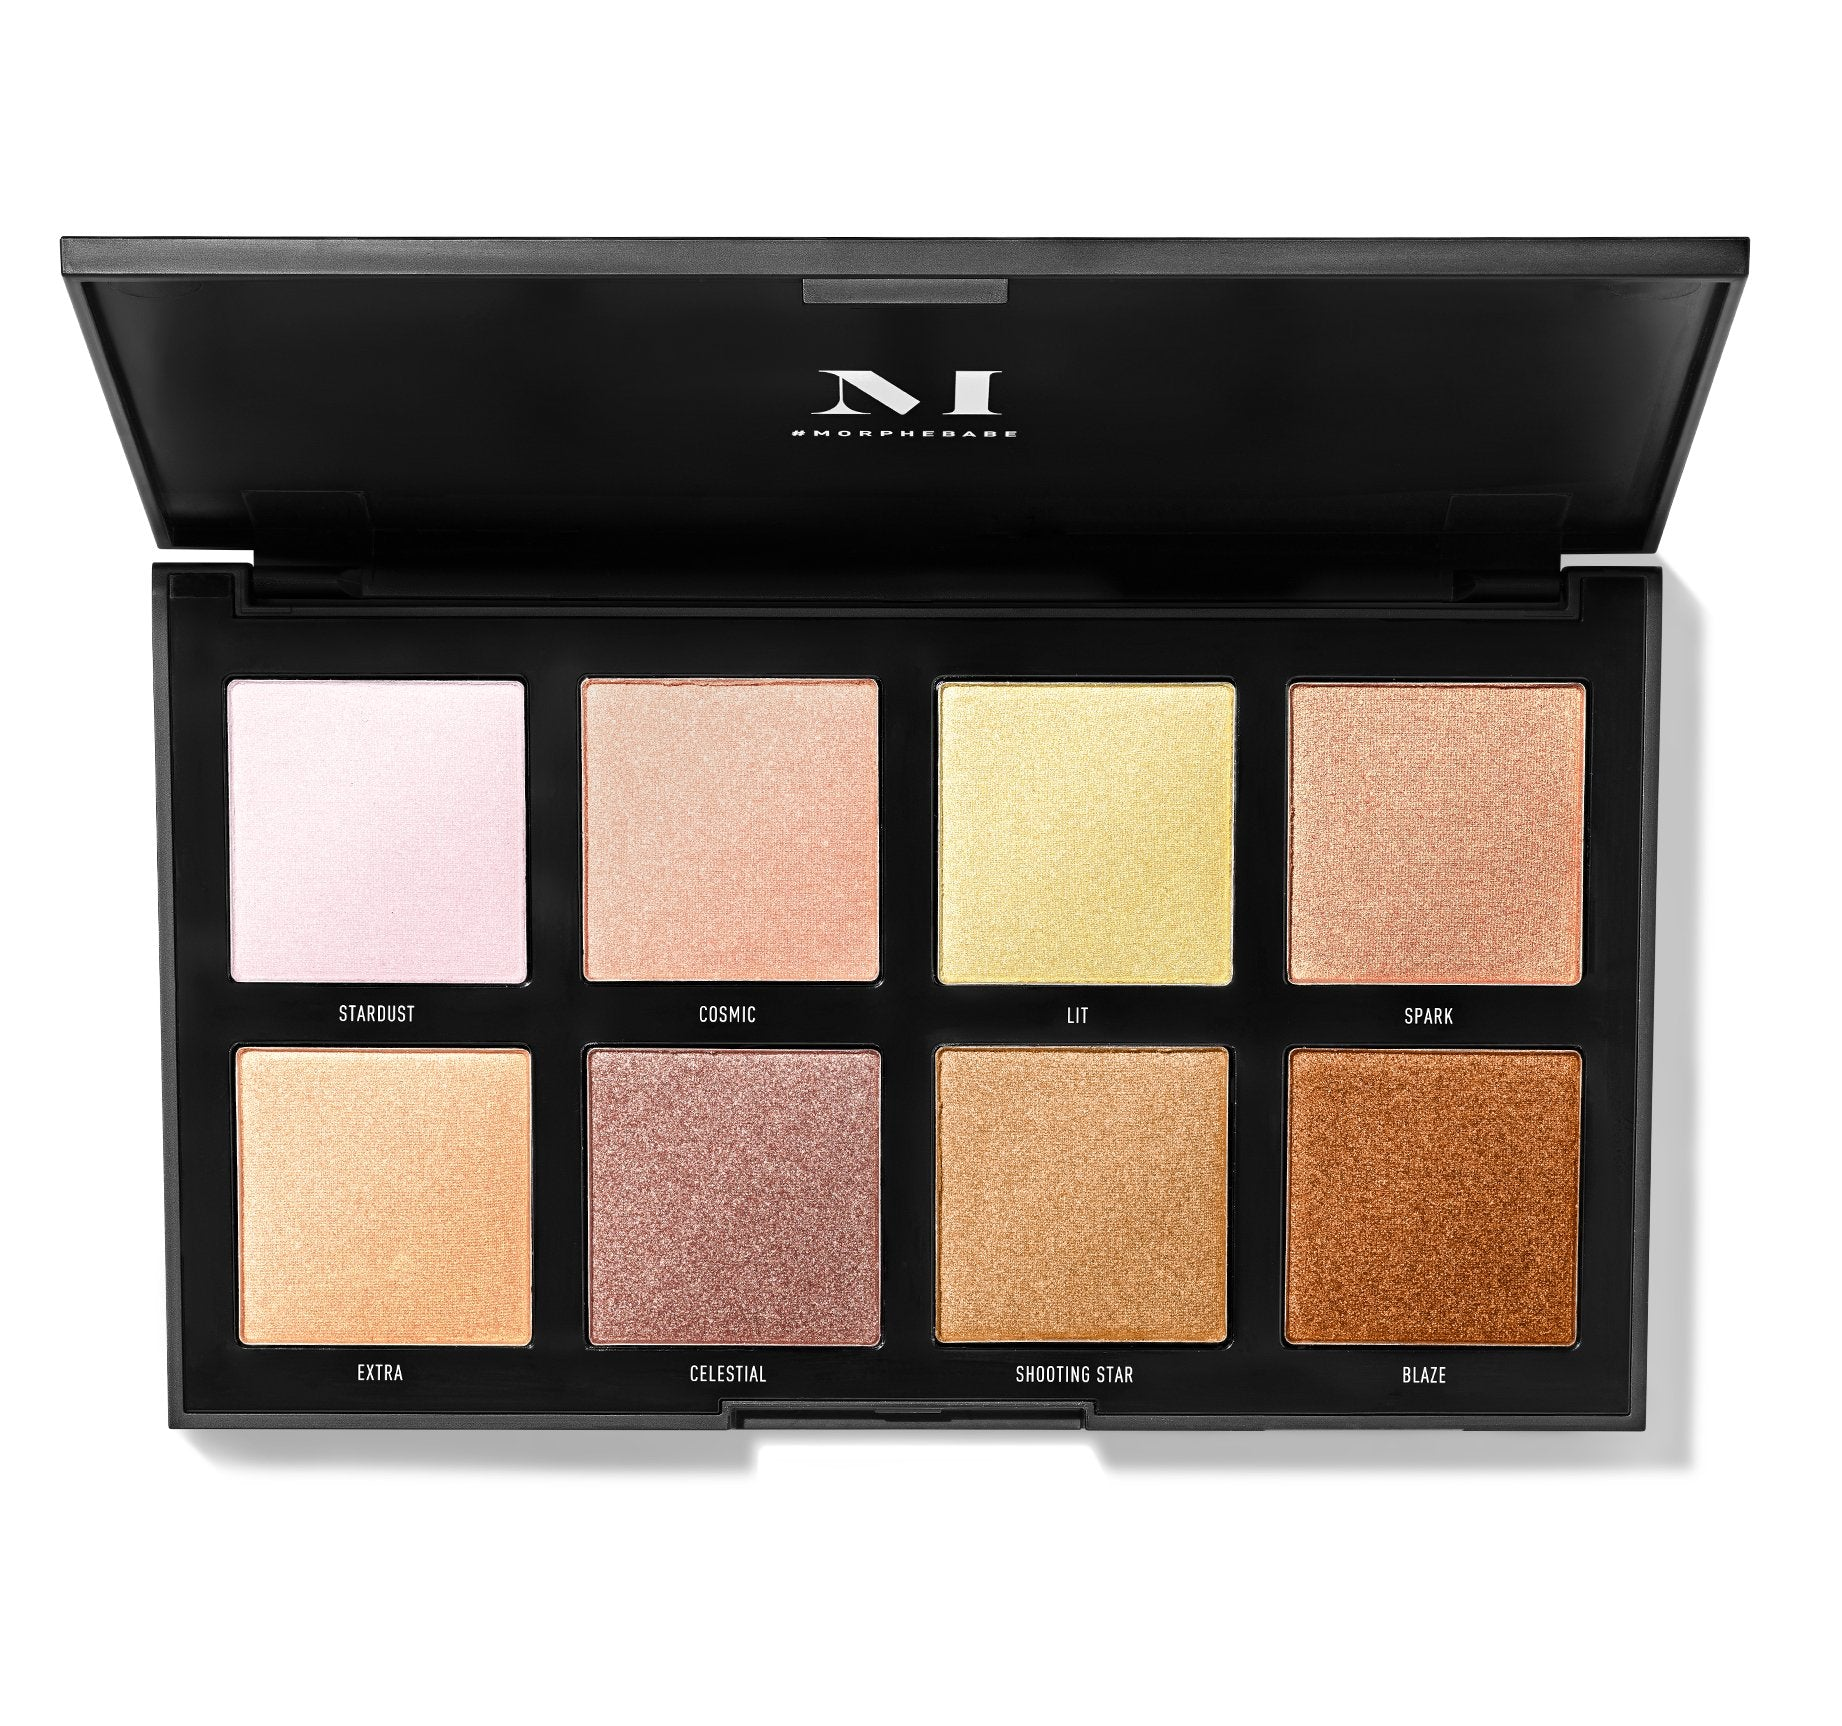 8Z STARBLAZER HIGHLIGHTER PALETTE, view larger image